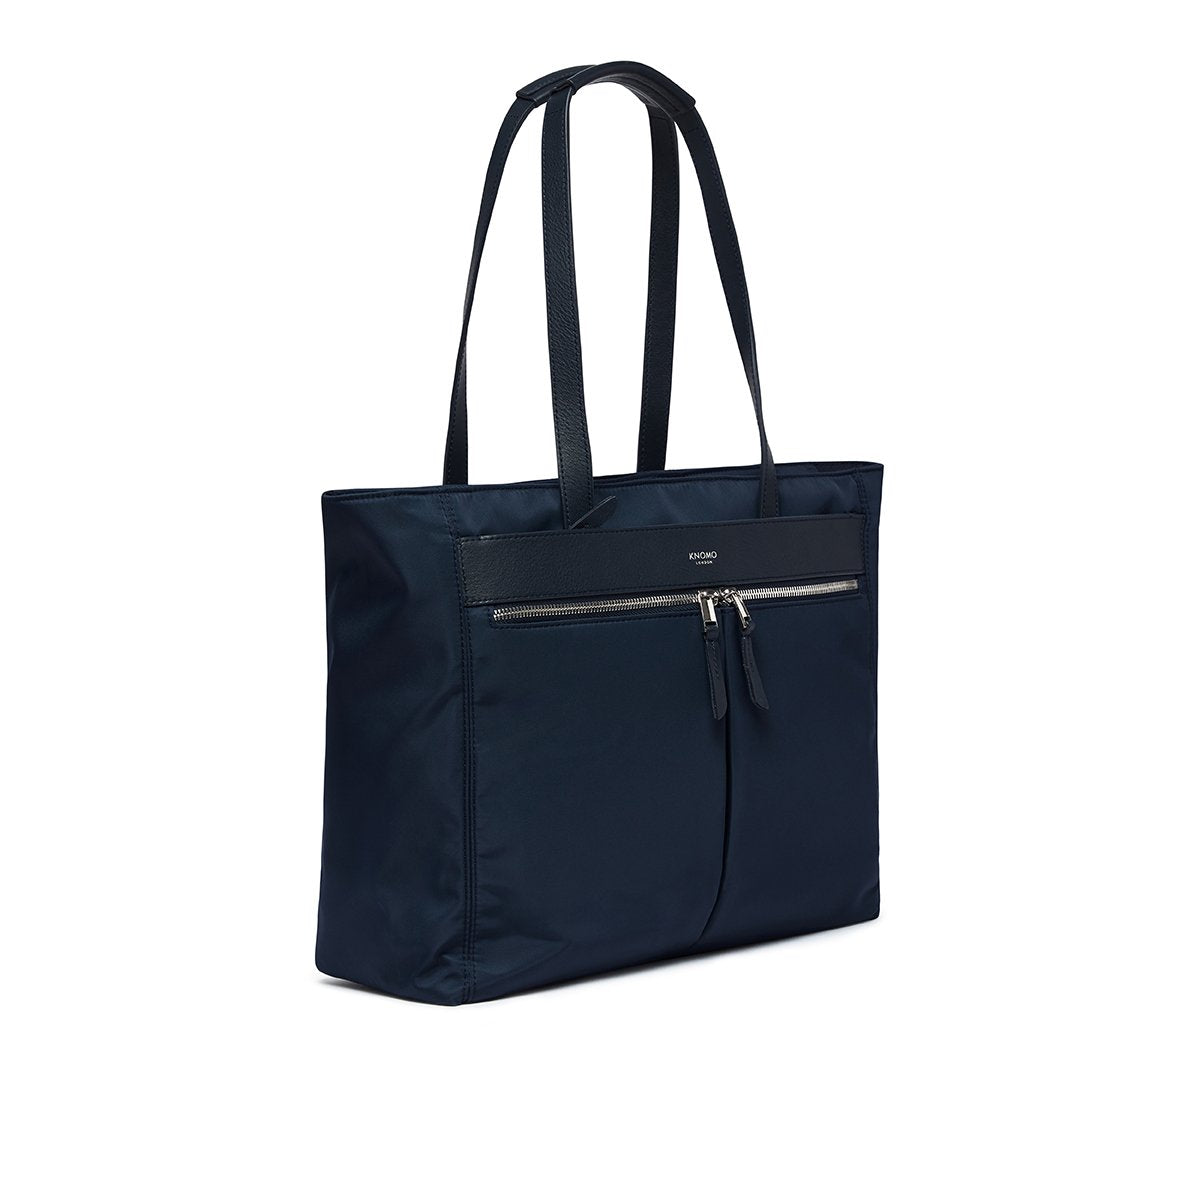 "KNOMO Grosvenor Place Tote Three Quarter View 14"" -  Dark Navy Blazer 